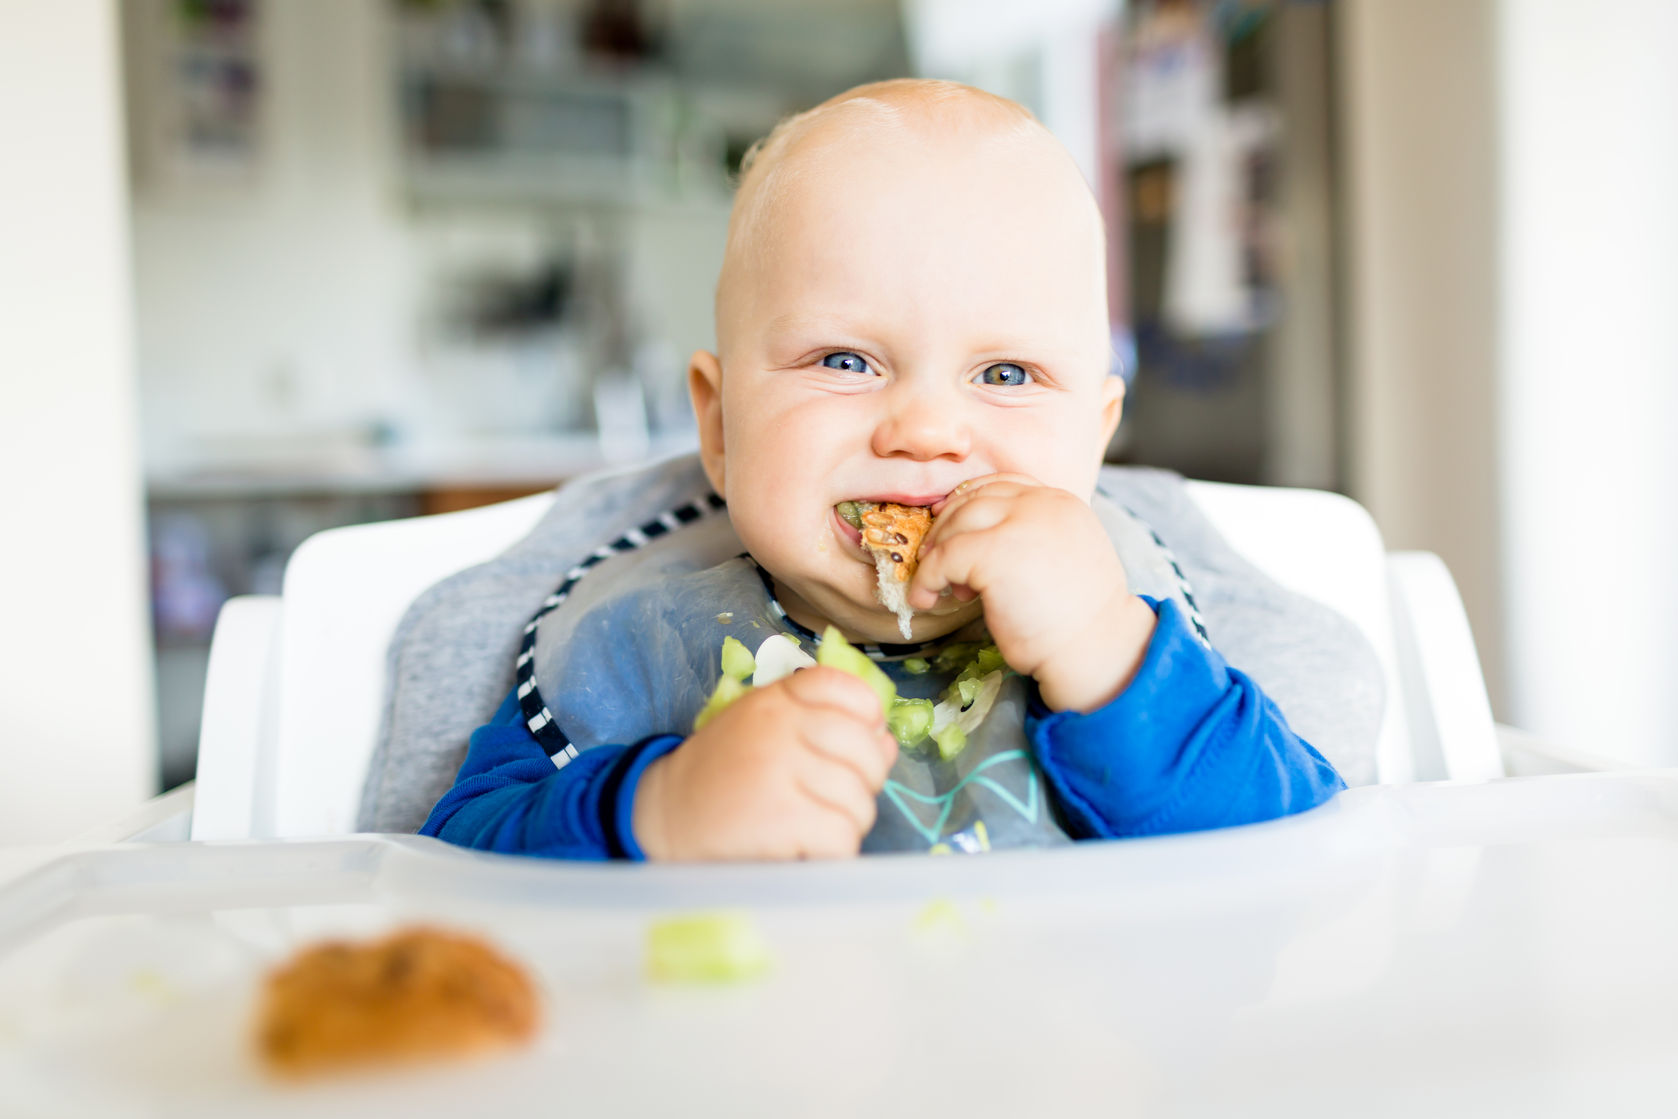 88394429 - baby eating bread and cucumber with blw method, baby led weaning. happy vegetarian kid eating lunch. toddler eat himself, self-feeding.